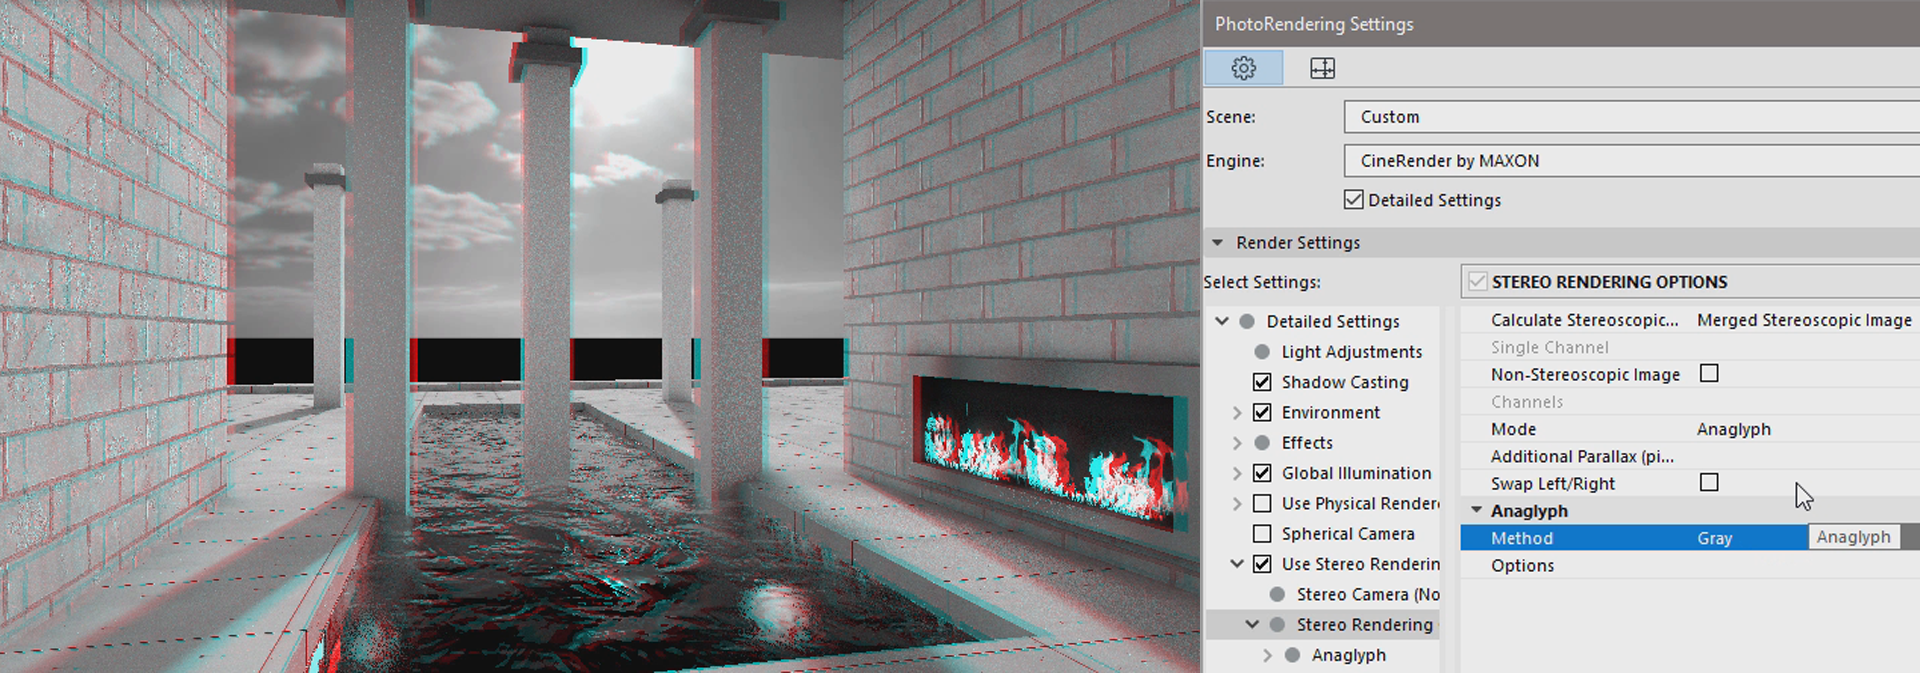 AC22-CineRender-Stereoscopic-Rendering-Anaglyph